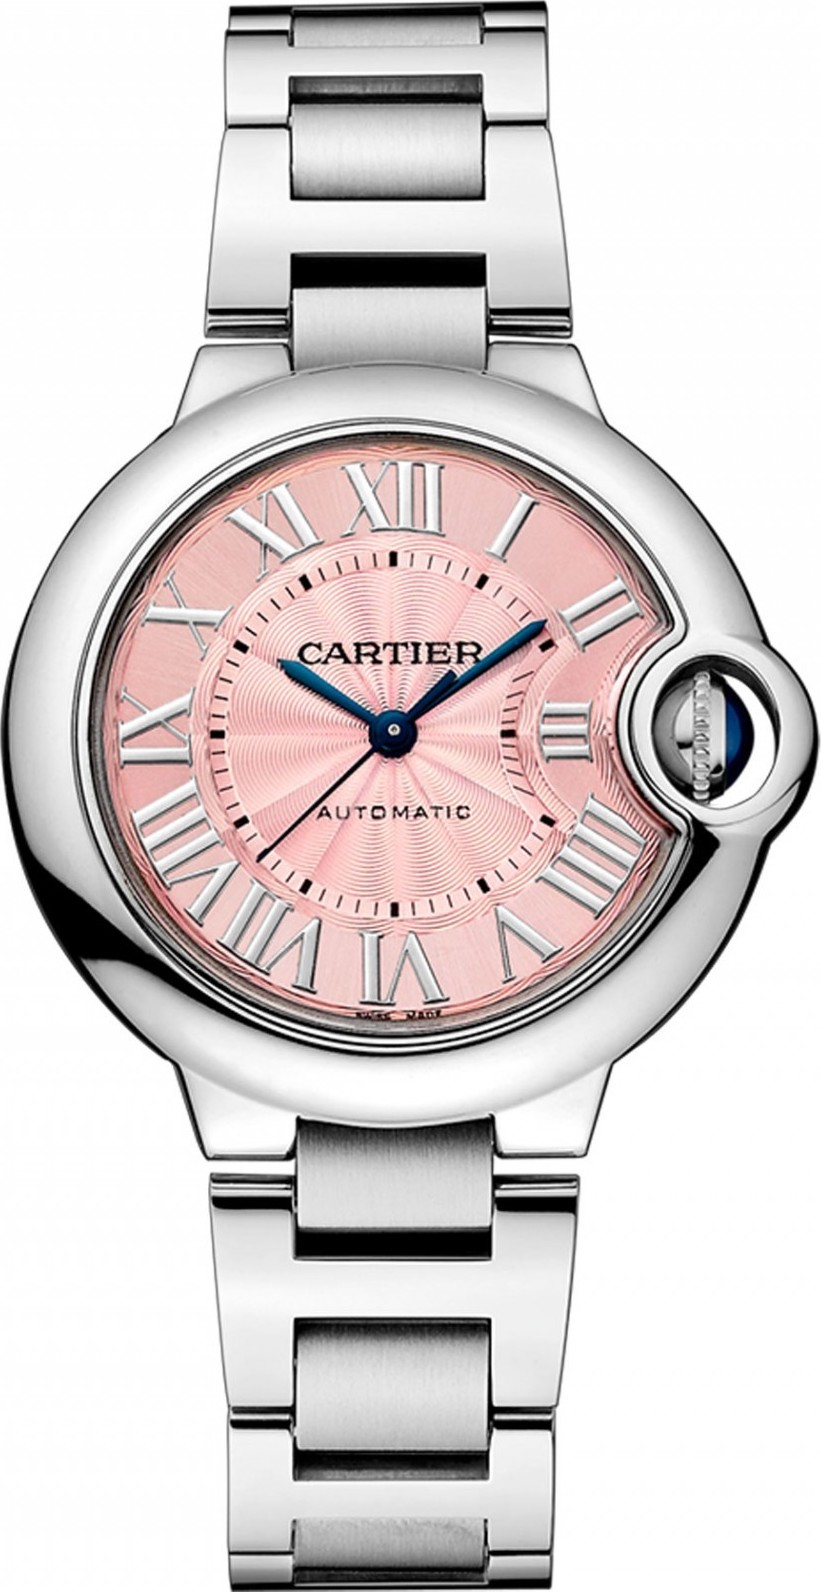 CARTIER Ballon Bleu w6920100 Auto Watch 33mm